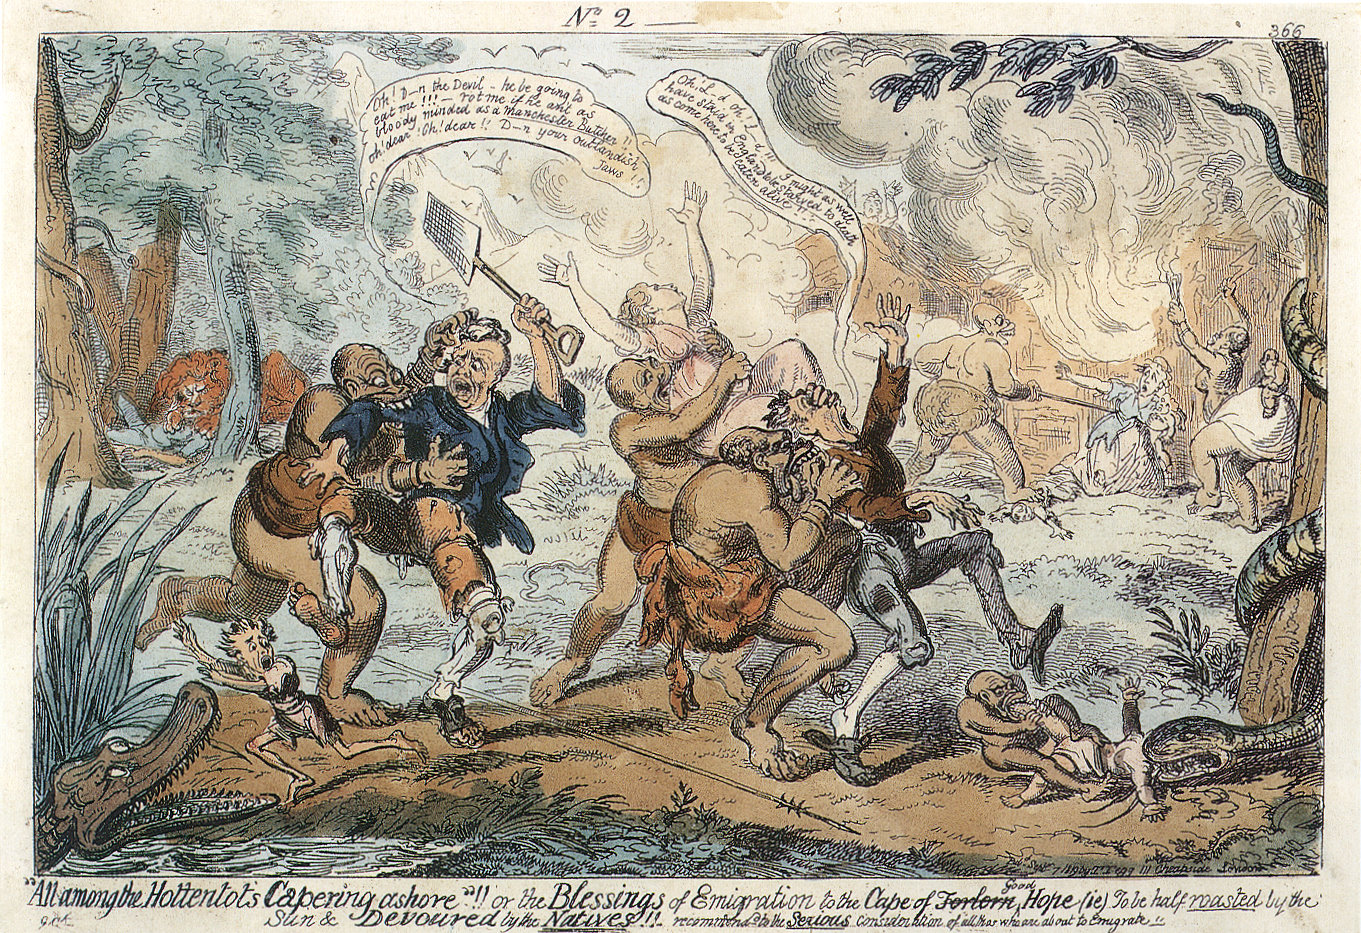 File:Cruikshank All among the Hottentots capering to shore ...